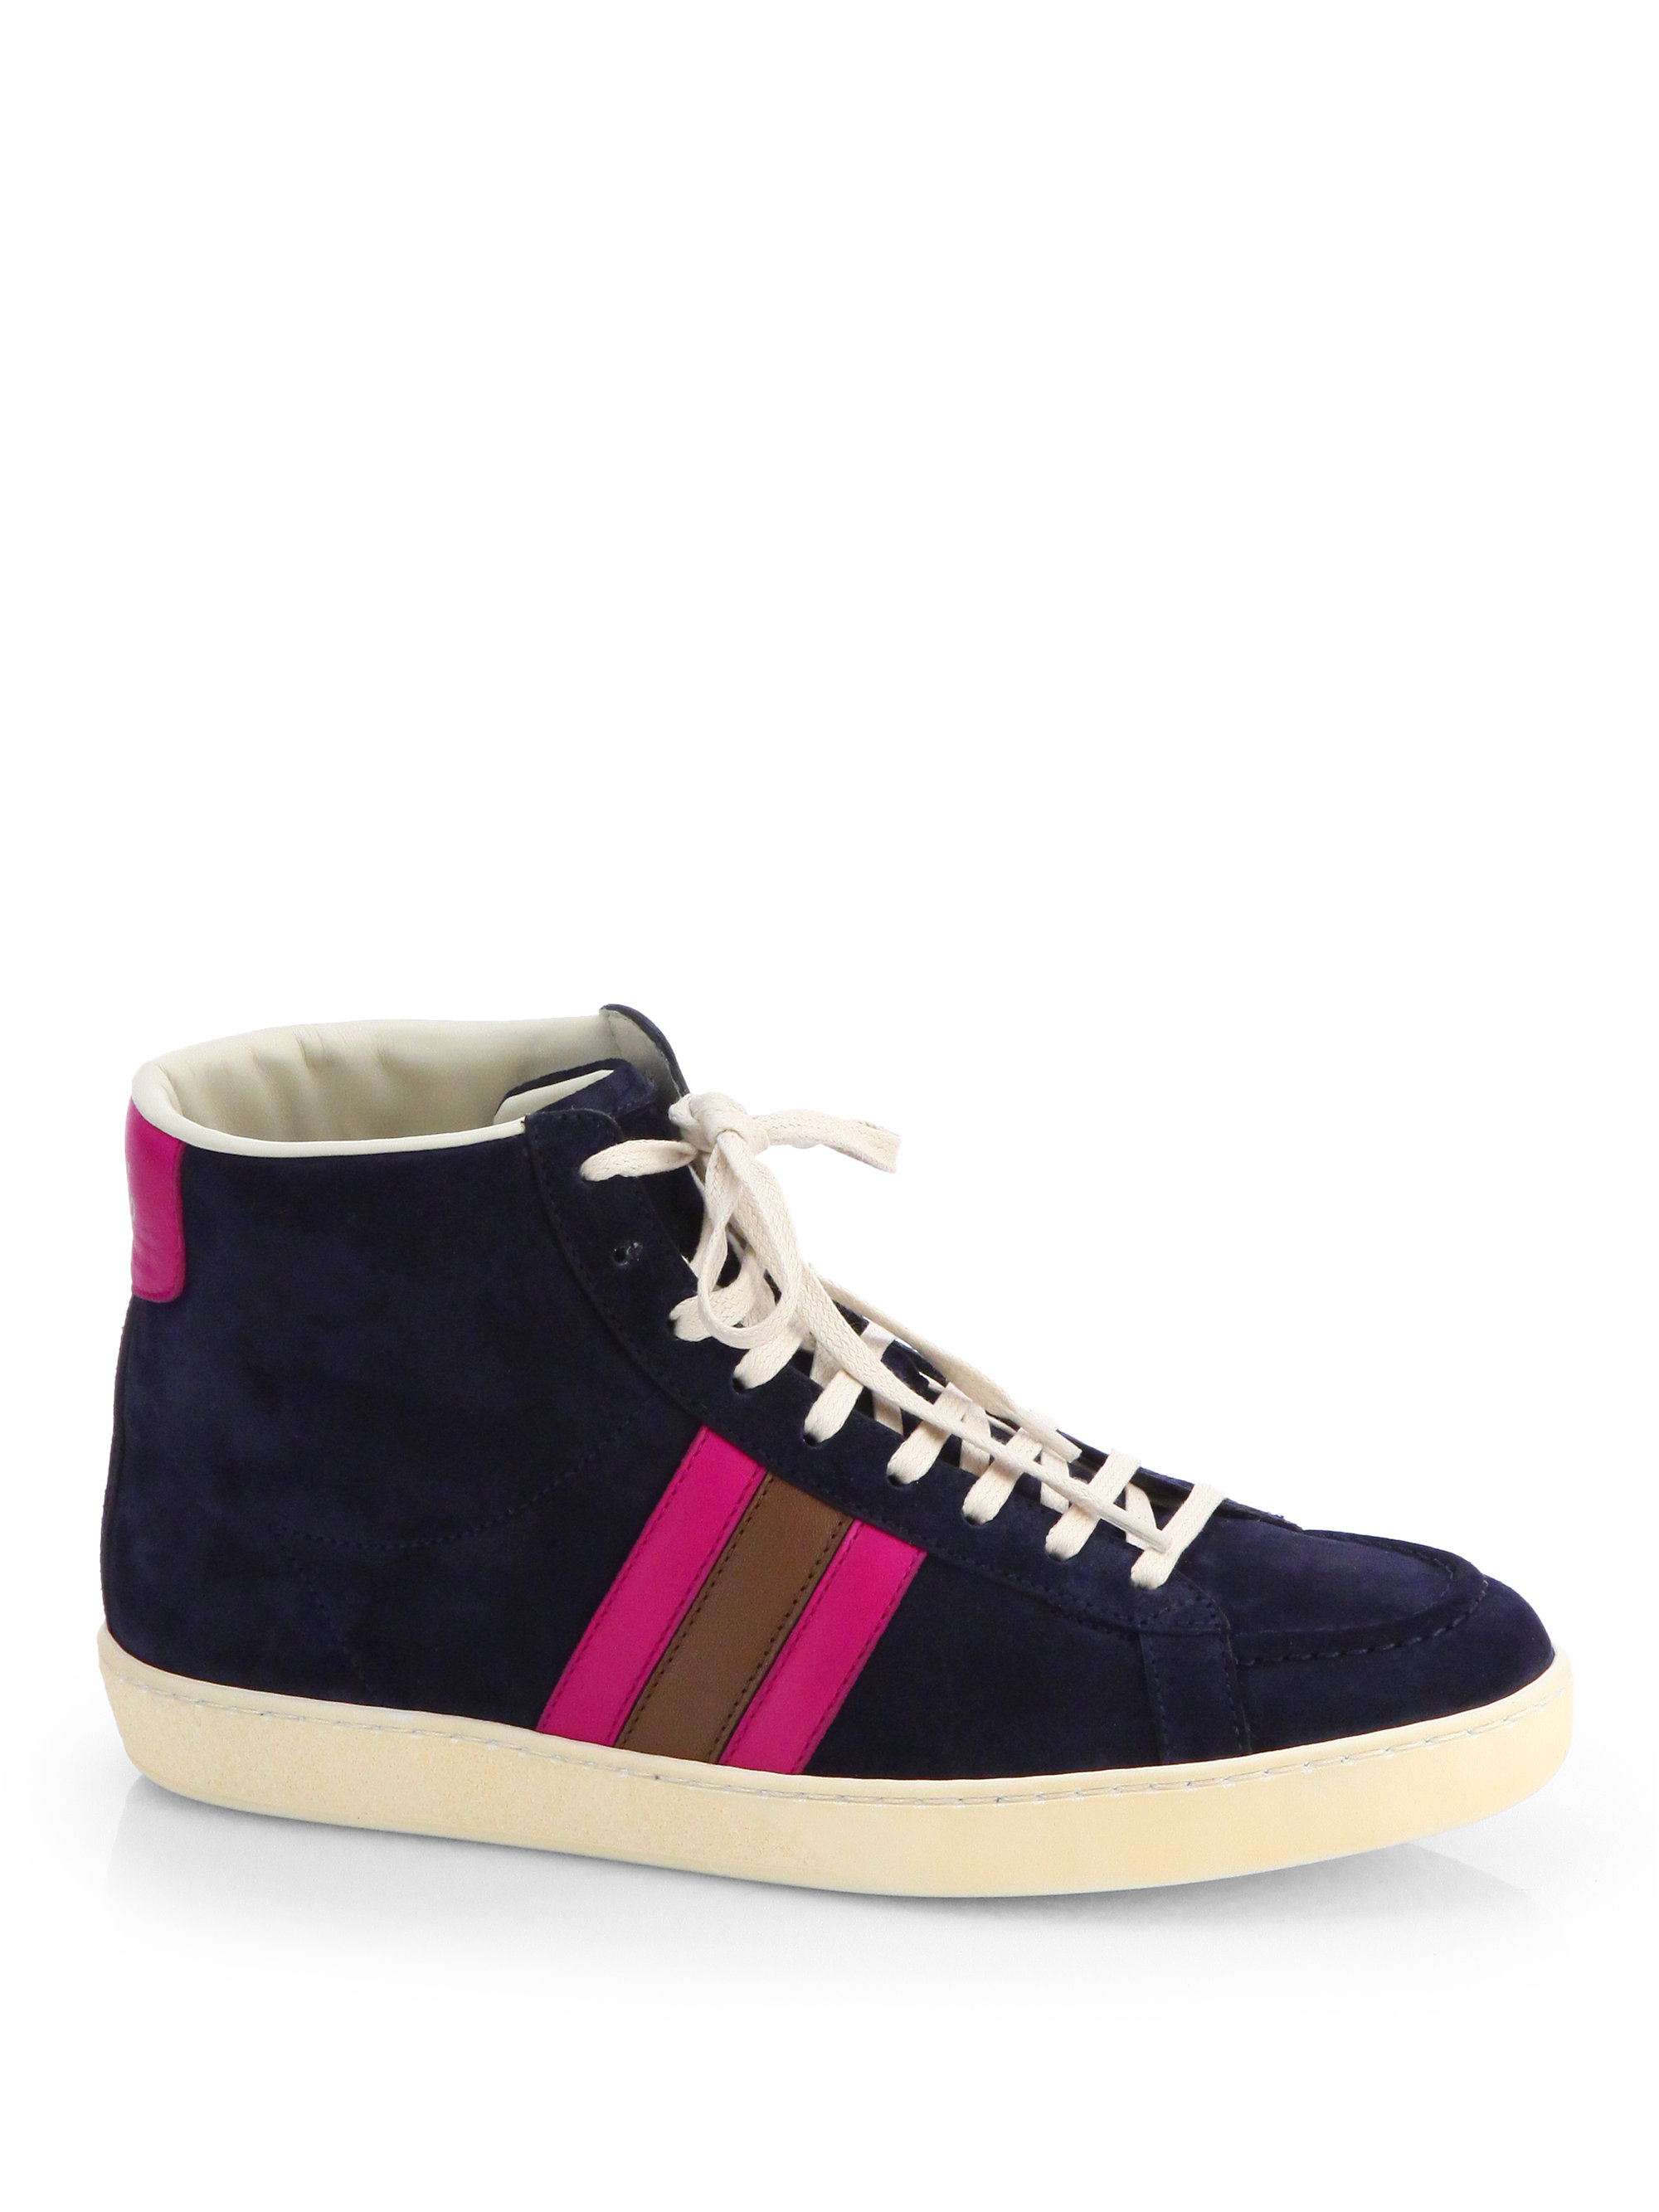 Lyst Gucci Orizon Multicolored Suede Hightop Sneakers In